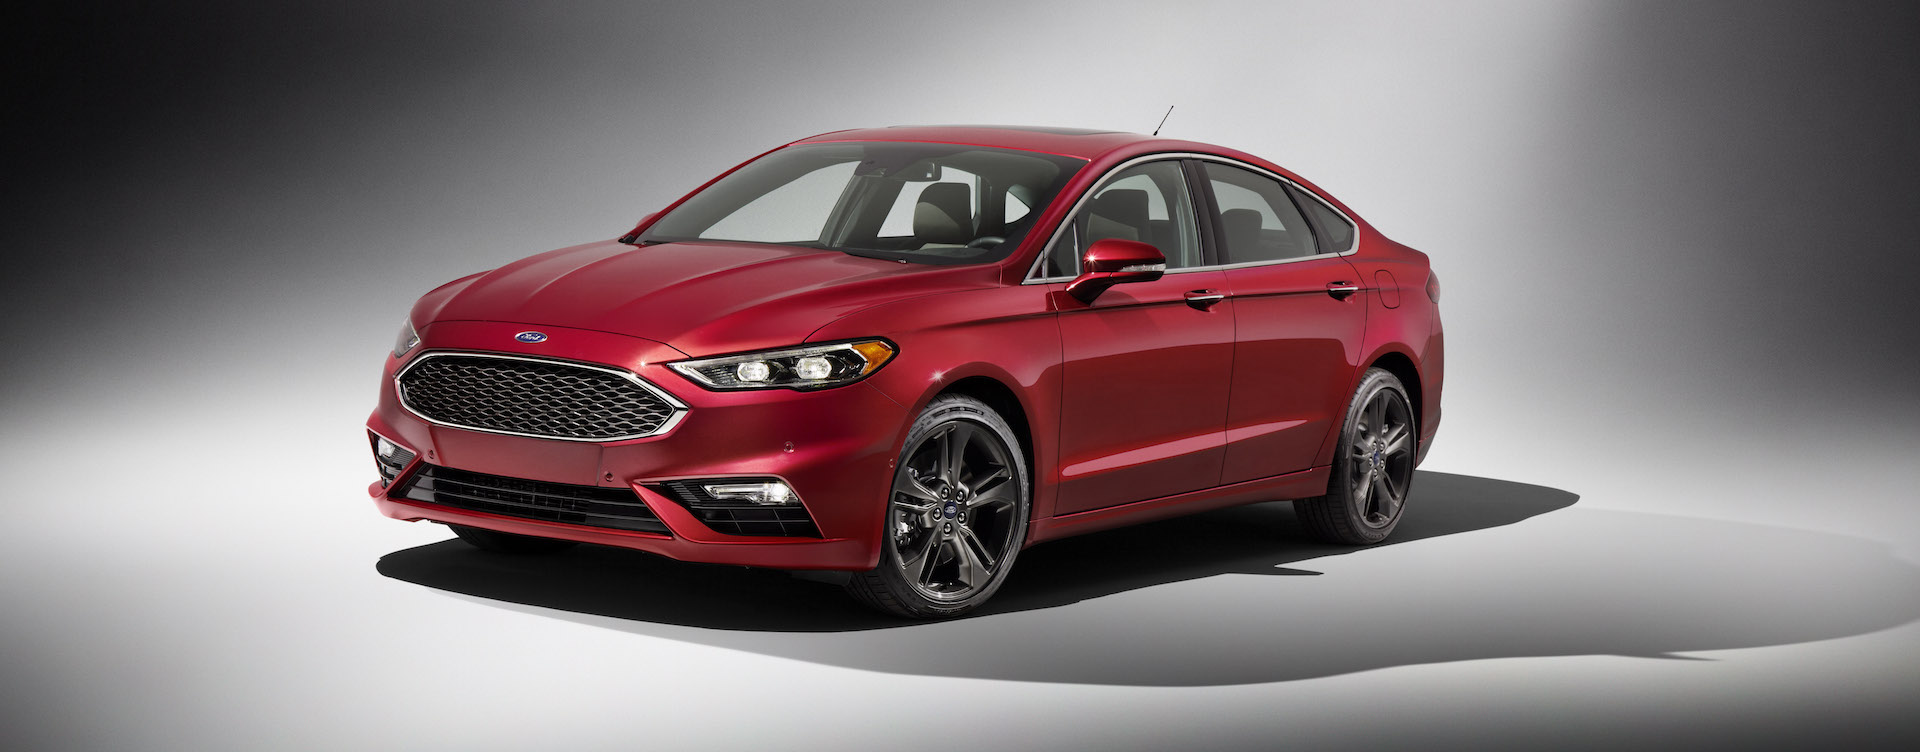 new and used ford fusion prices photos reviews specs the car connection. Black Bedroom Furniture Sets. Home Design Ideas